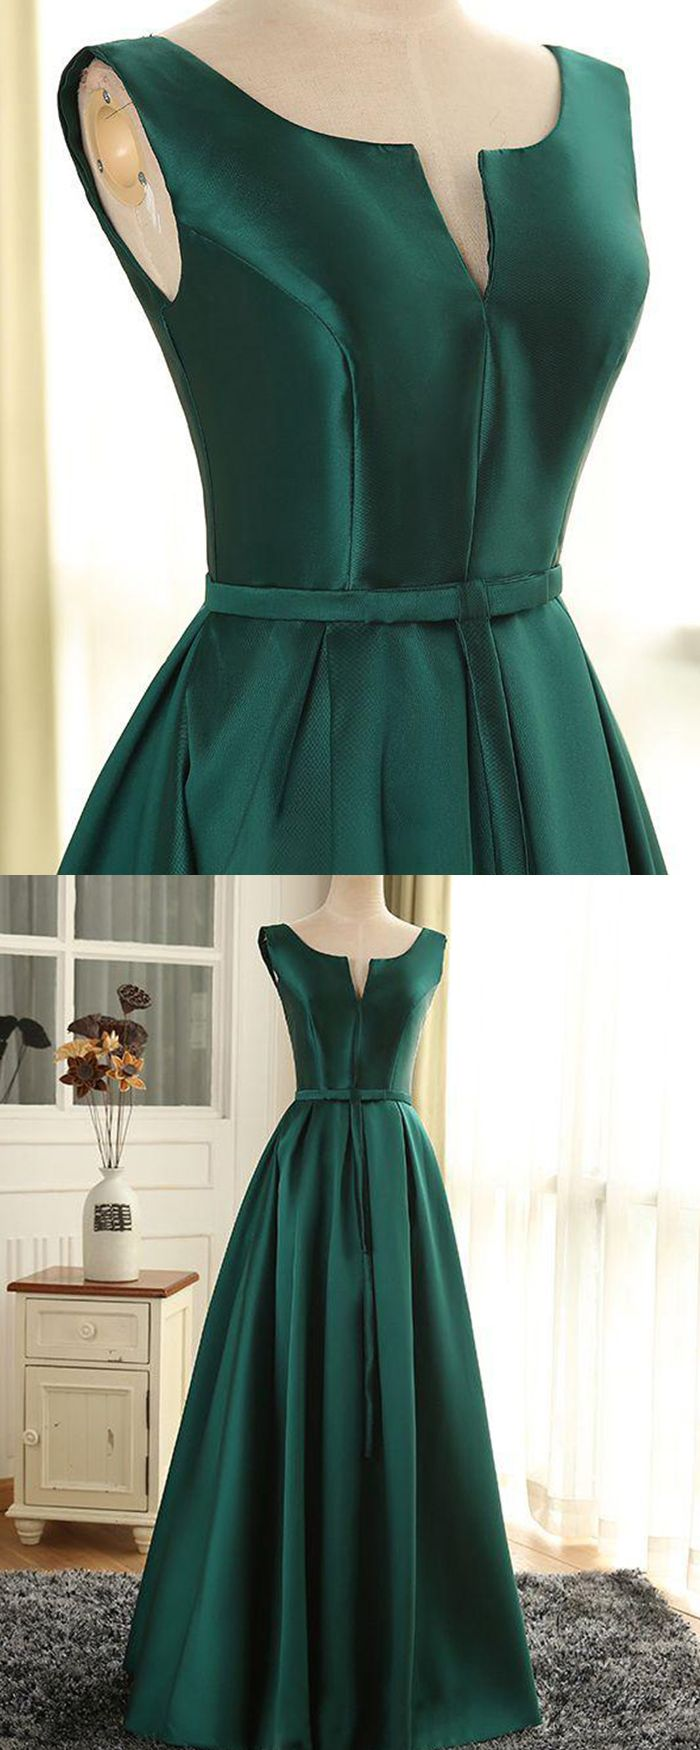 Scoop Cutout Satin Green Long Prom Dress With Lace Up Pm1368 Long Green Dress Trendy Party Dresses Simple Dresses [ 1750 x 700 Pixel ]